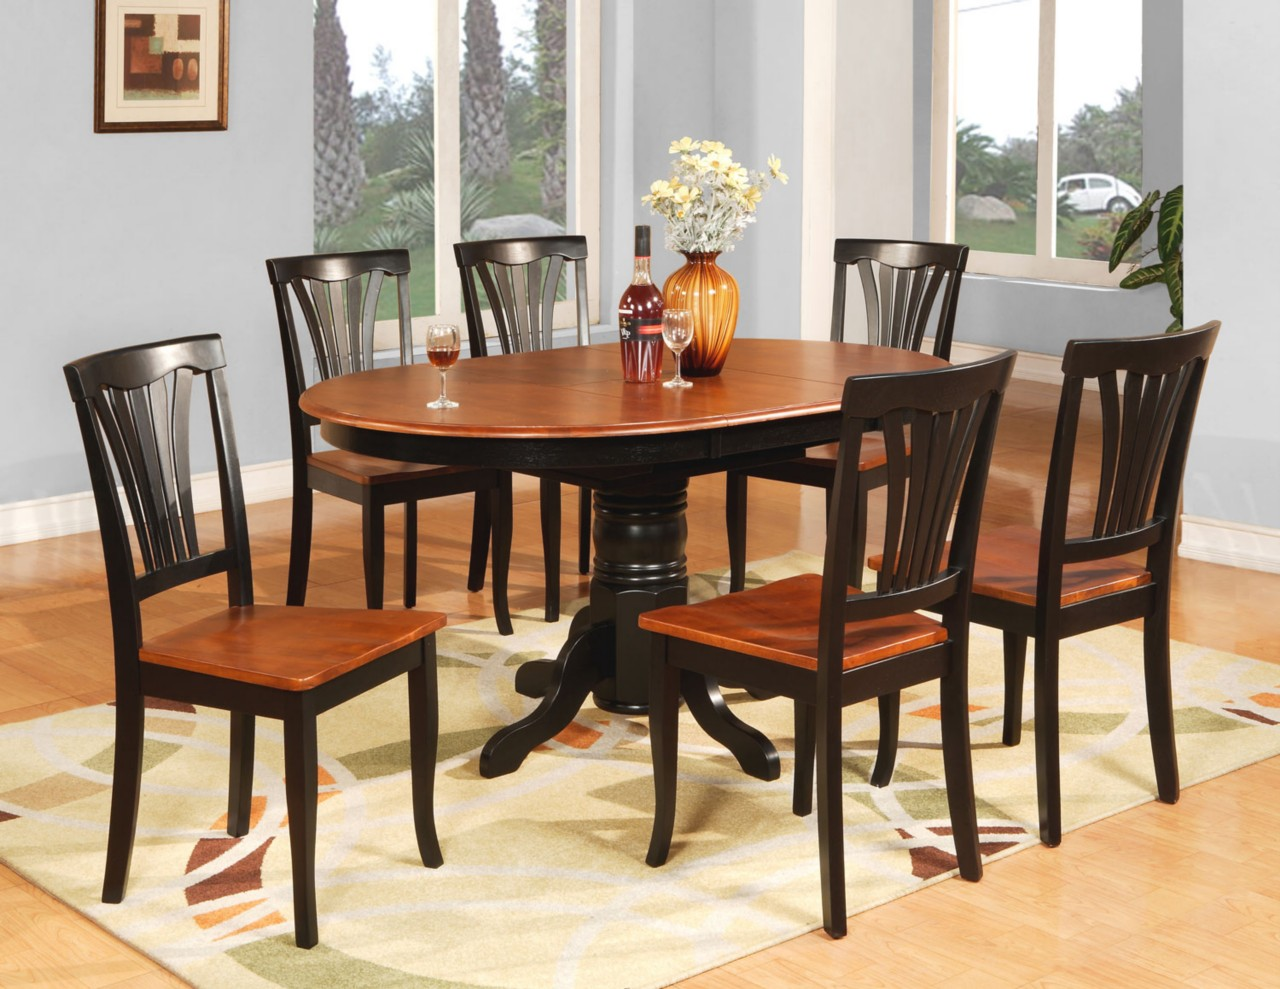 7 pc oval dinette kitchen dining room table 6 chairs ebay for Dining room table and chair sets